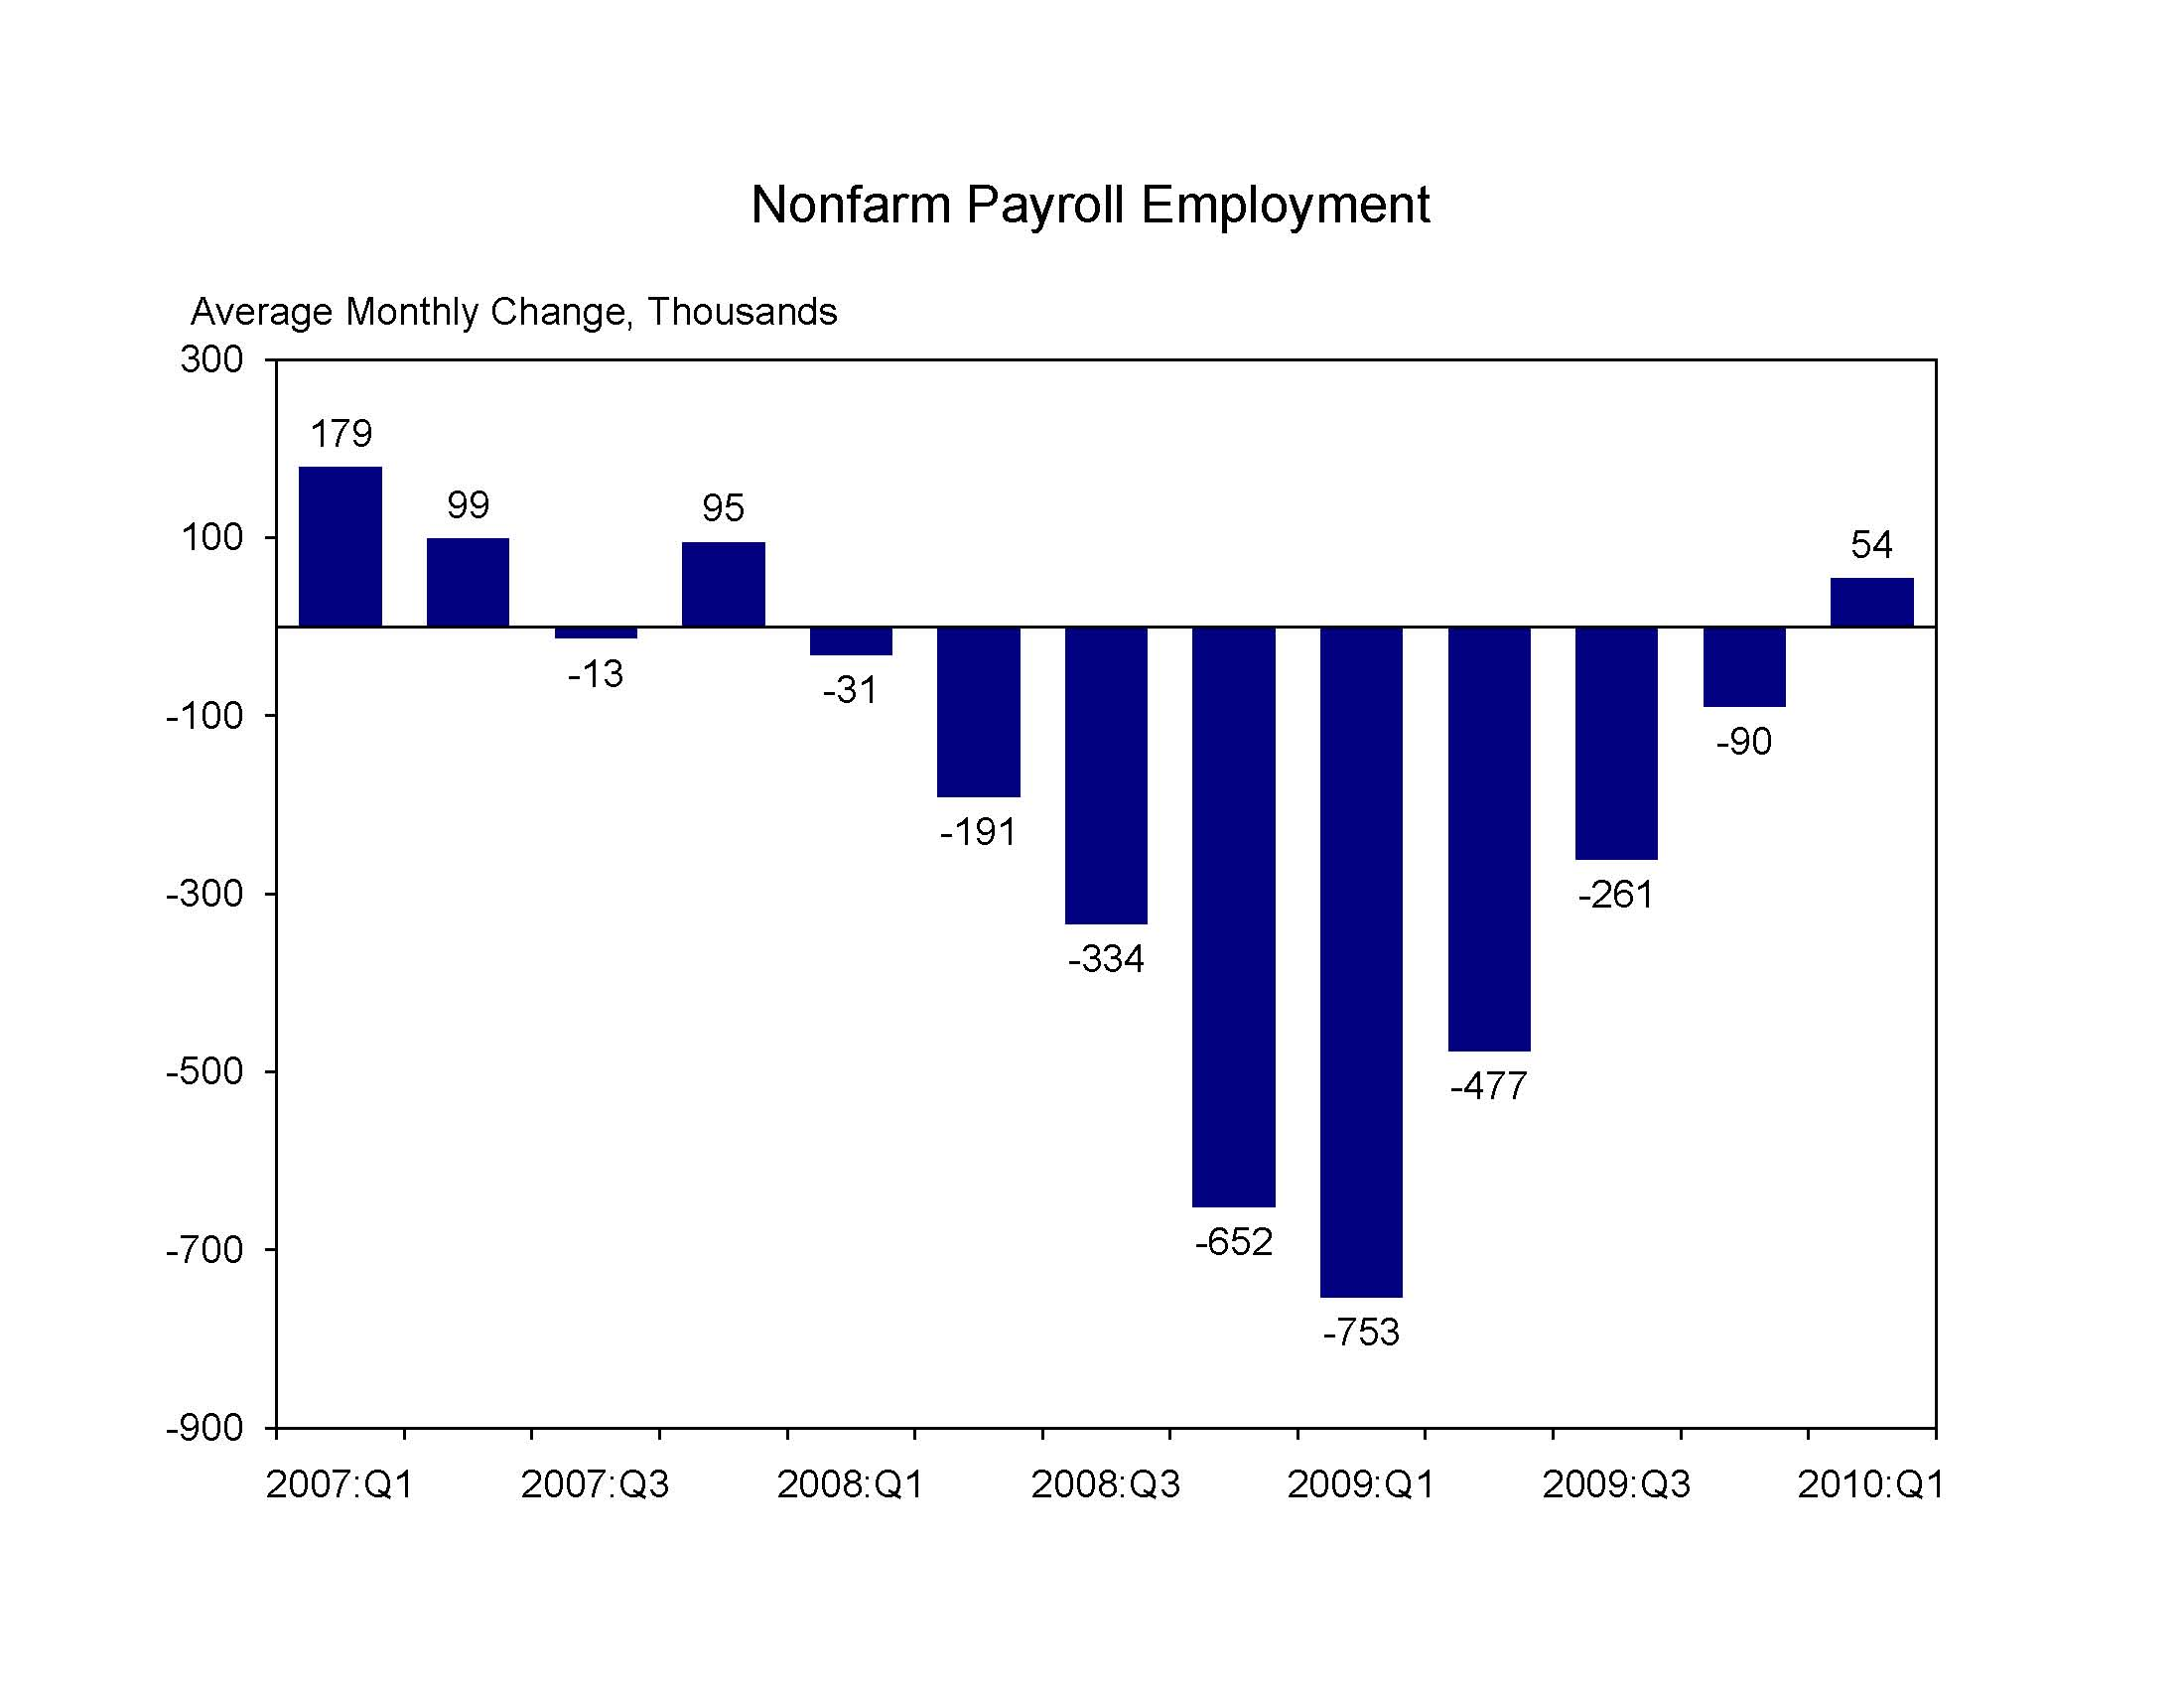 Nonfarm Payroll Employment Q1 2010